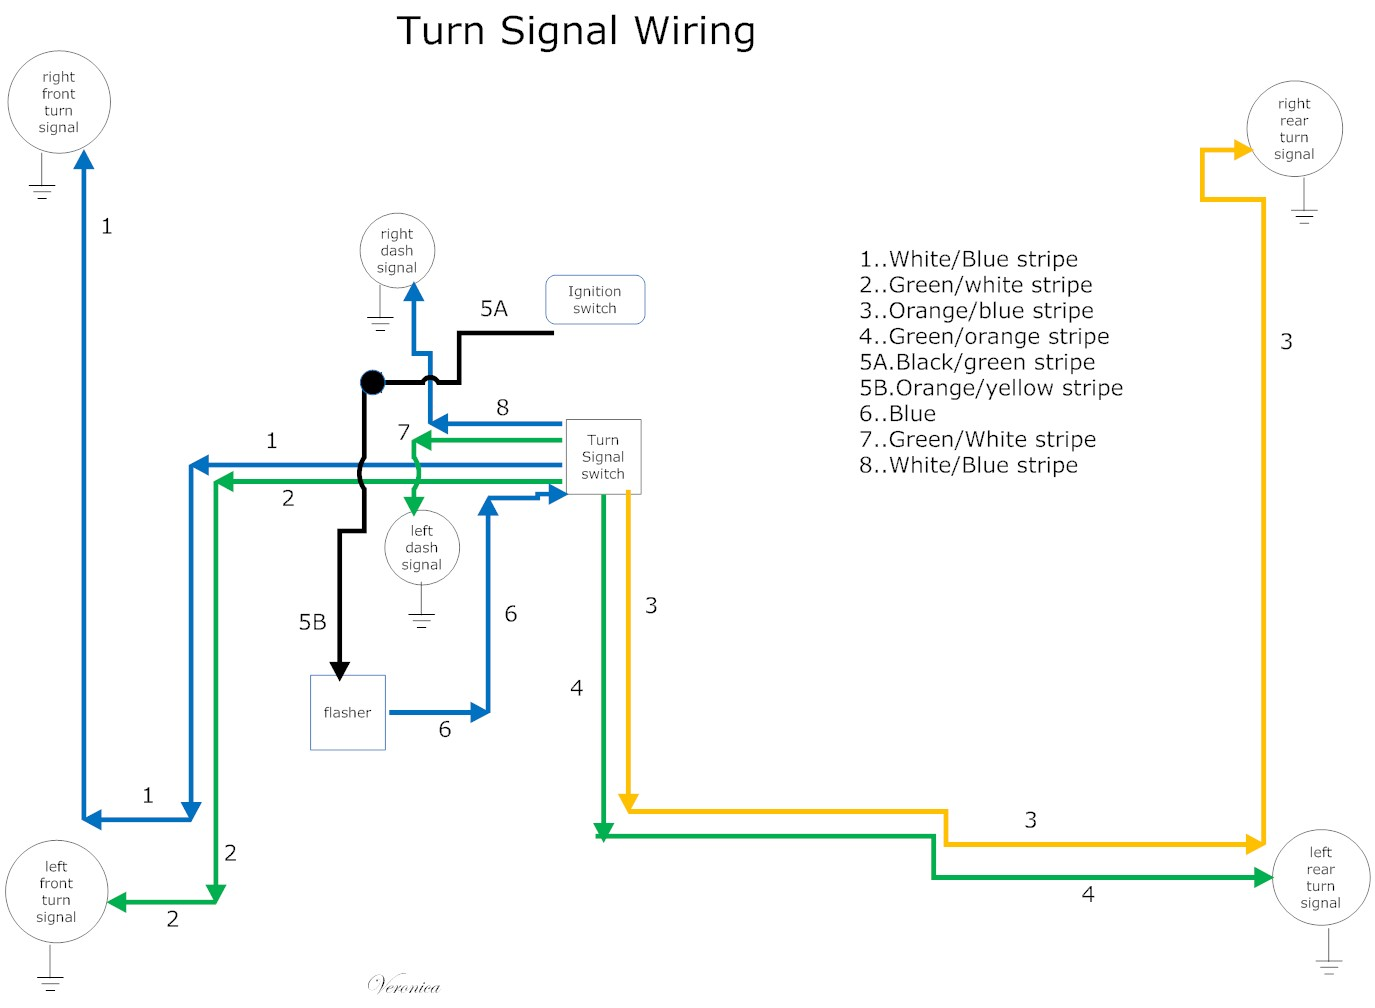 Turn+signal+Wiring 2012 mustang wiring diagram 2010 flex wiring diagram \u2022 wiring  at webbmarketing.co